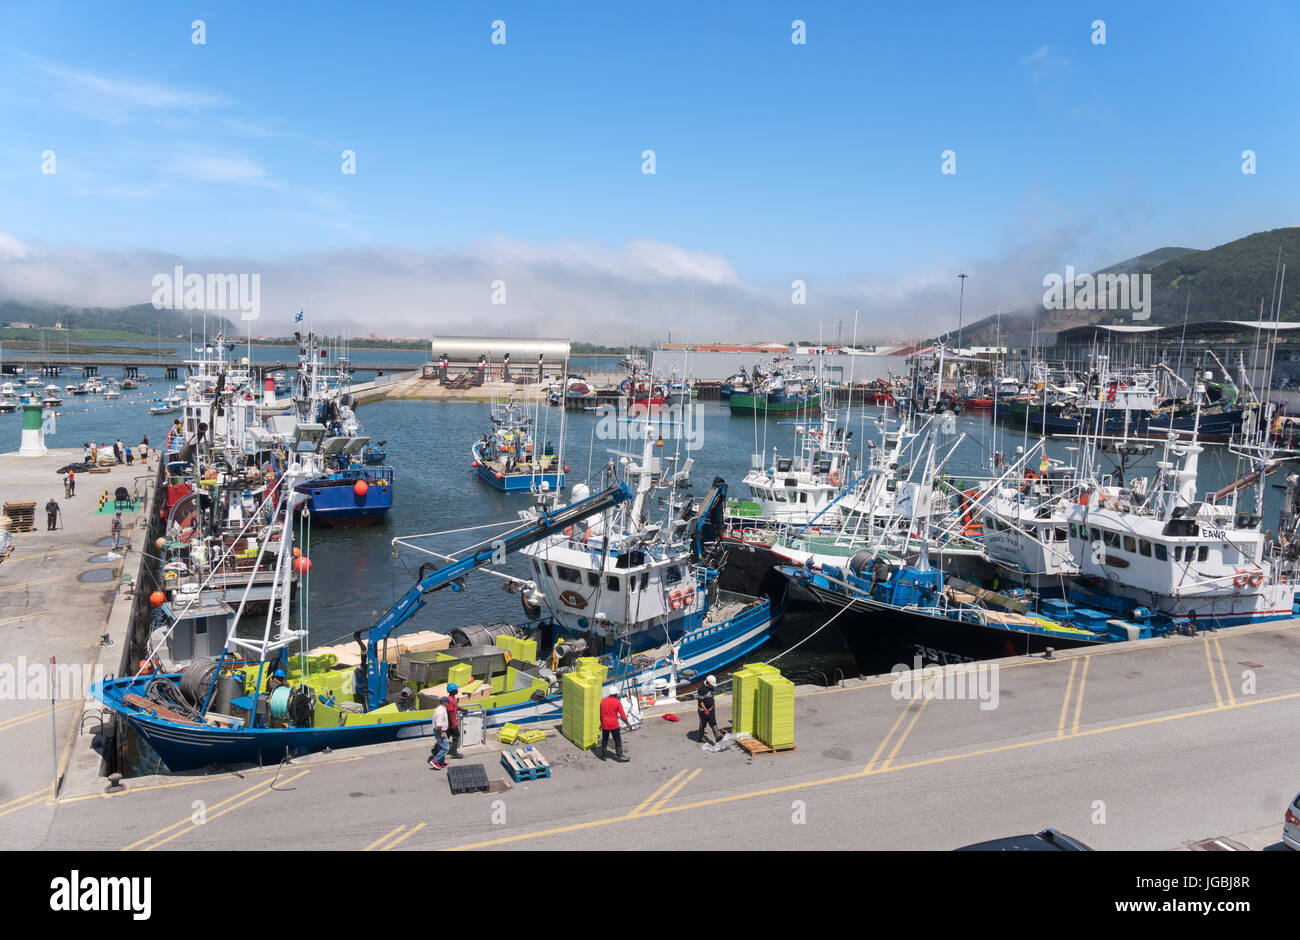 Fishermen at work on fishing boat in Santoña harbour, Cantabria, Spain - Stock Image